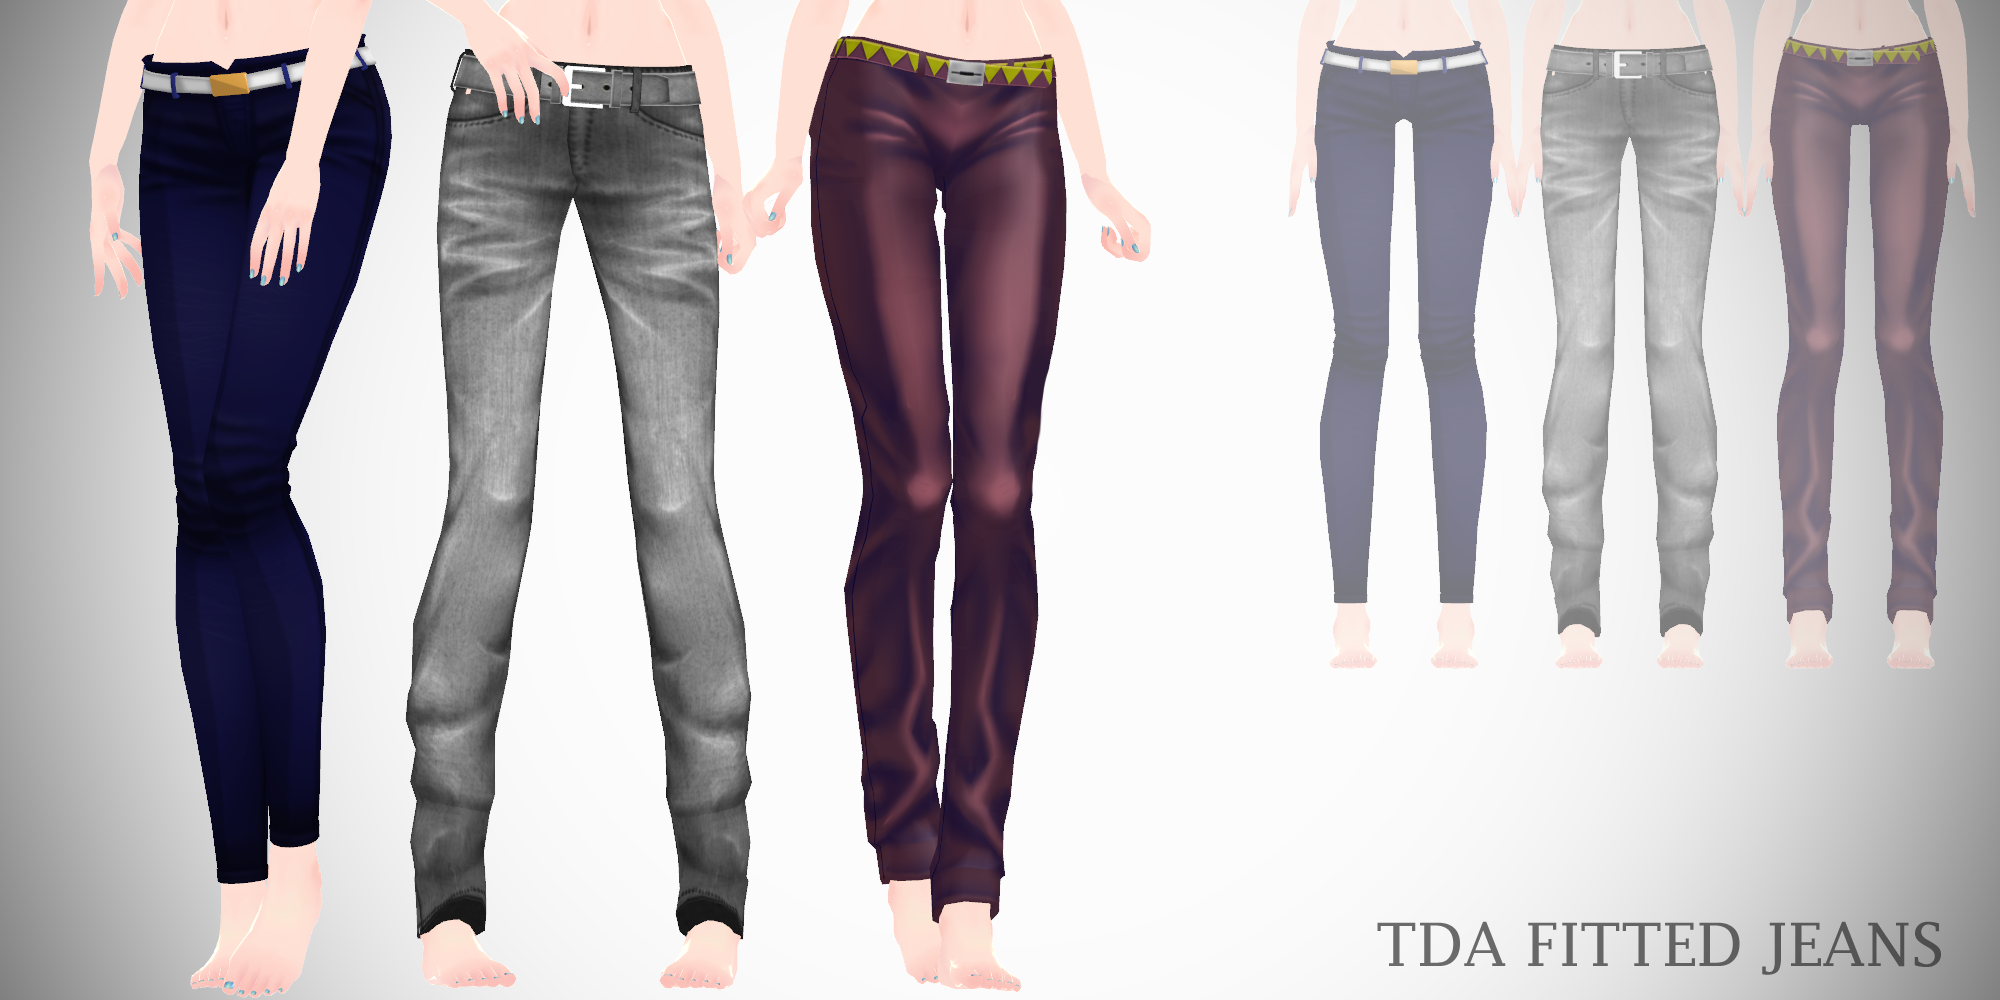 mmd - TDA Fitted jeans [Download] by InsannitySempai